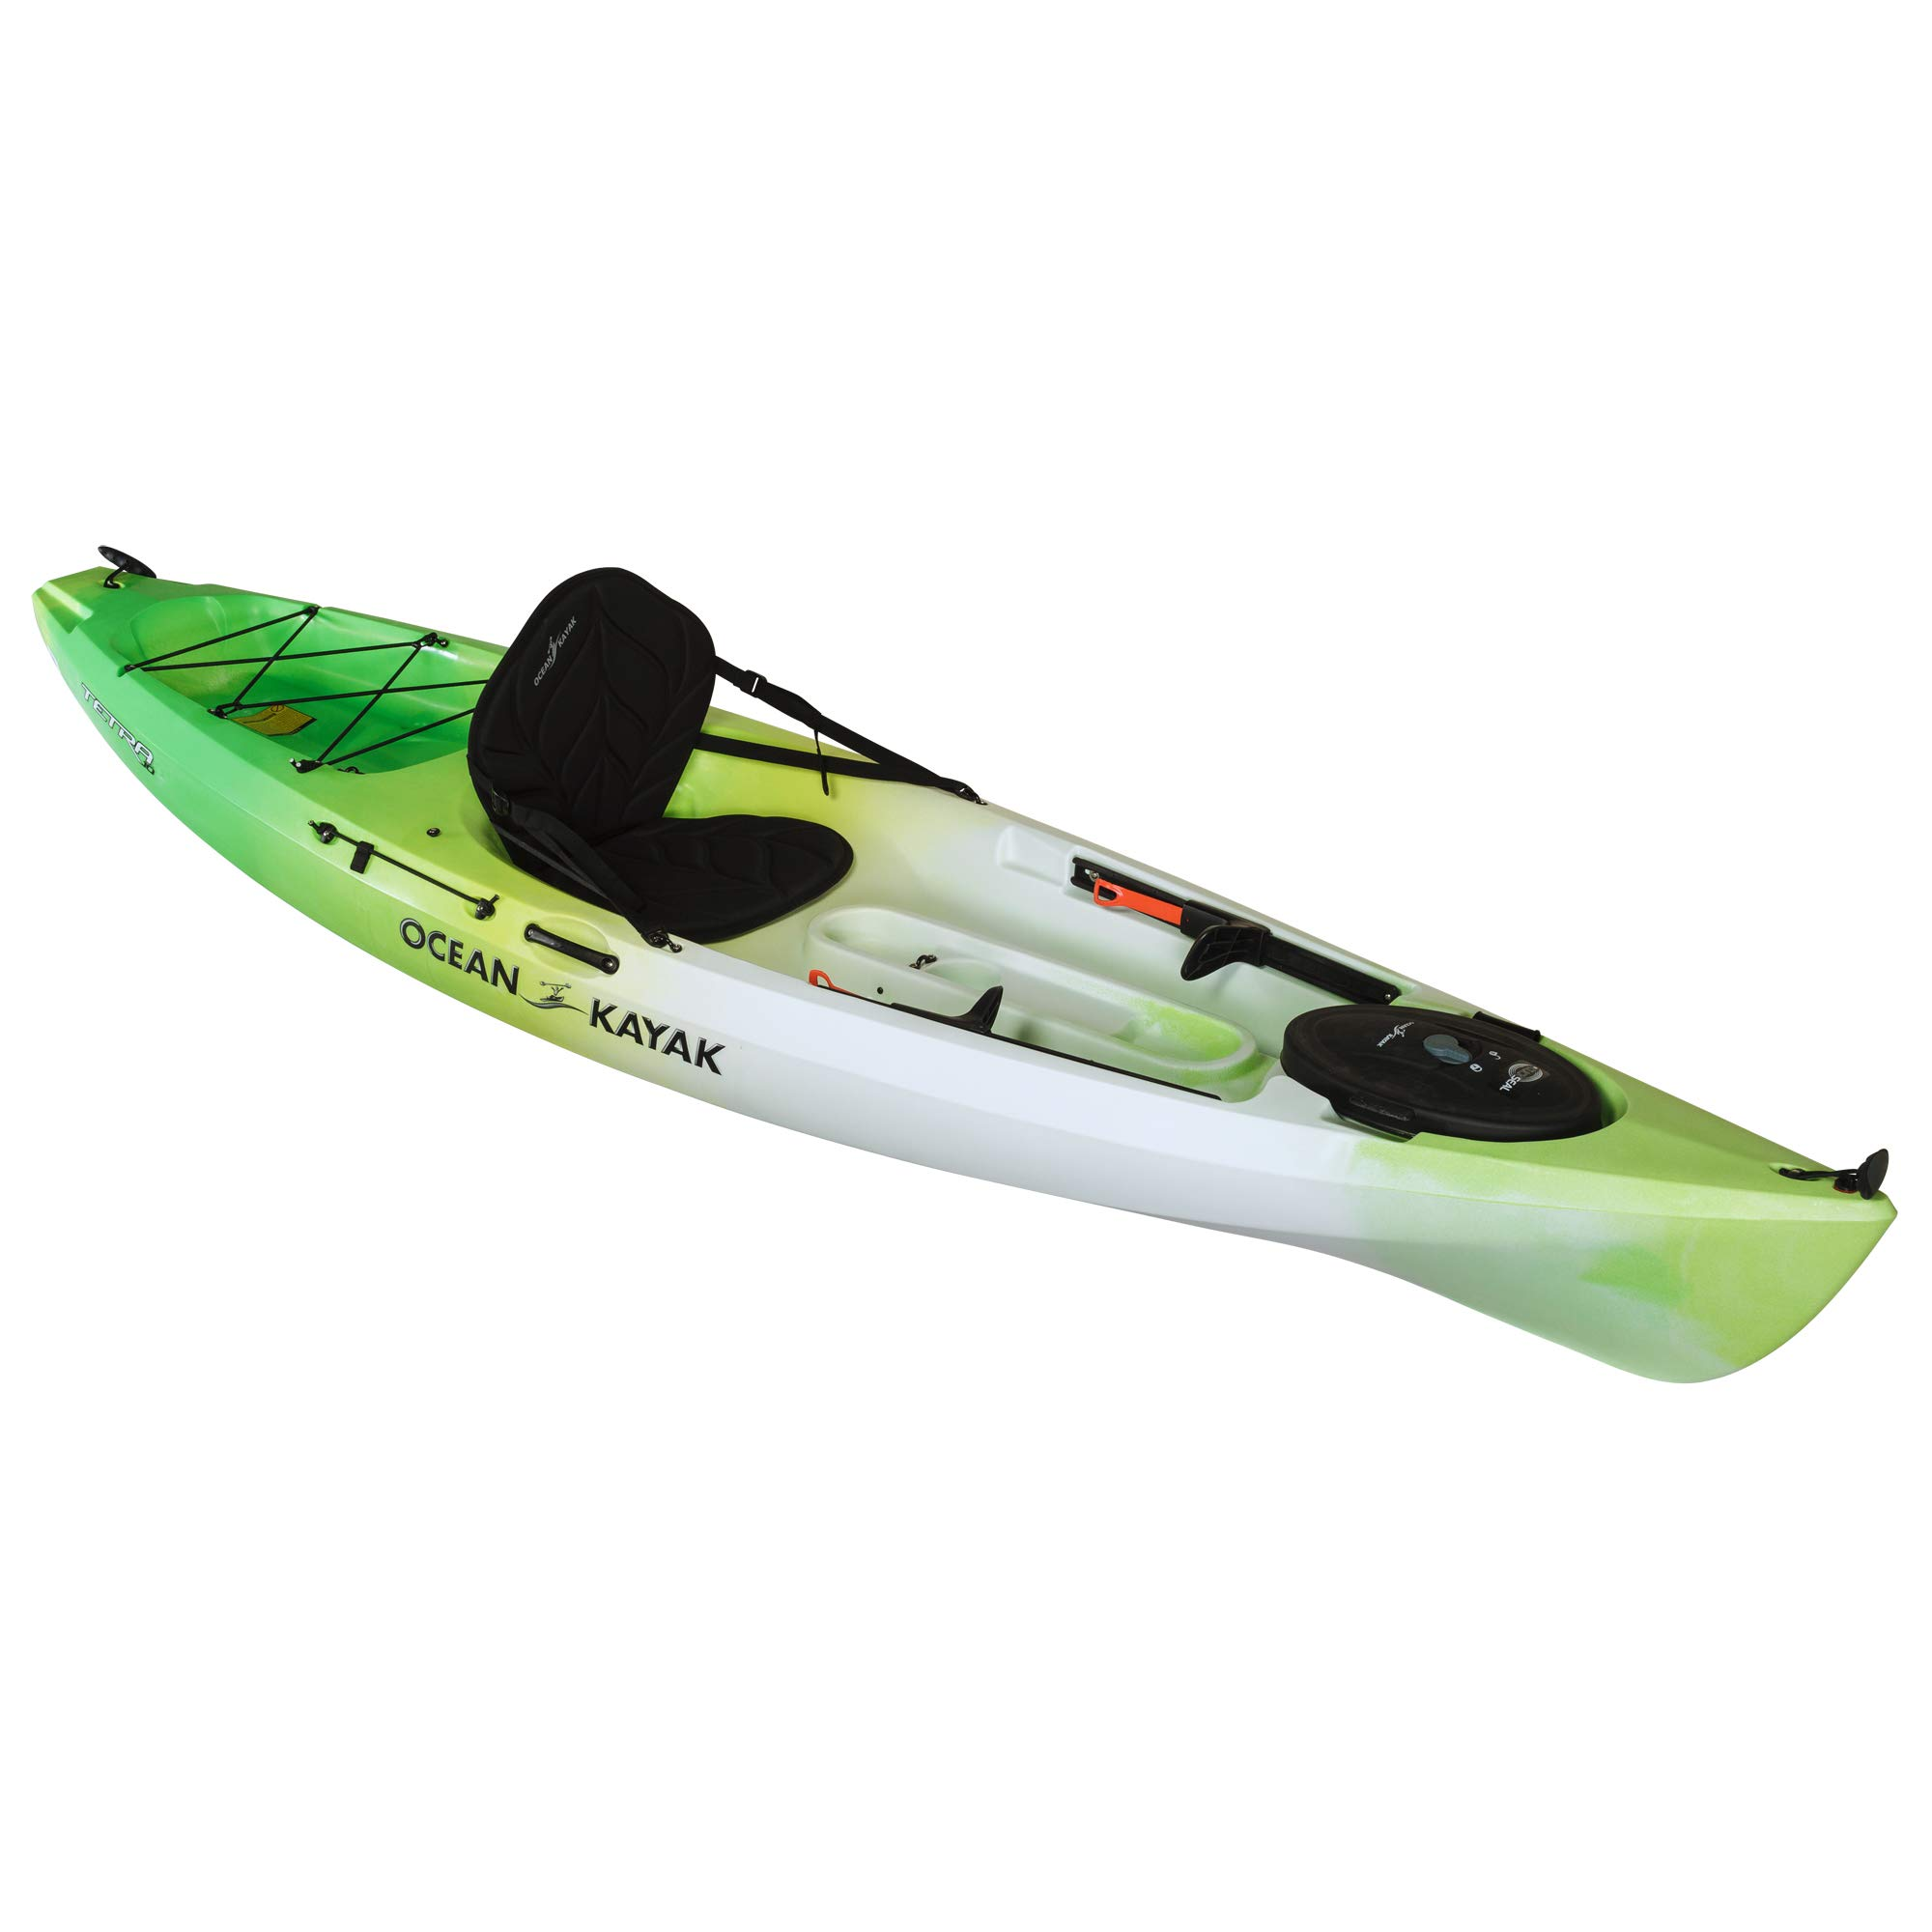 Ocean Kayak Tetra 10 One-Person Sit-On-Top Kayak, Envy, 10 Feet 8 Inches by Ocean Kayak